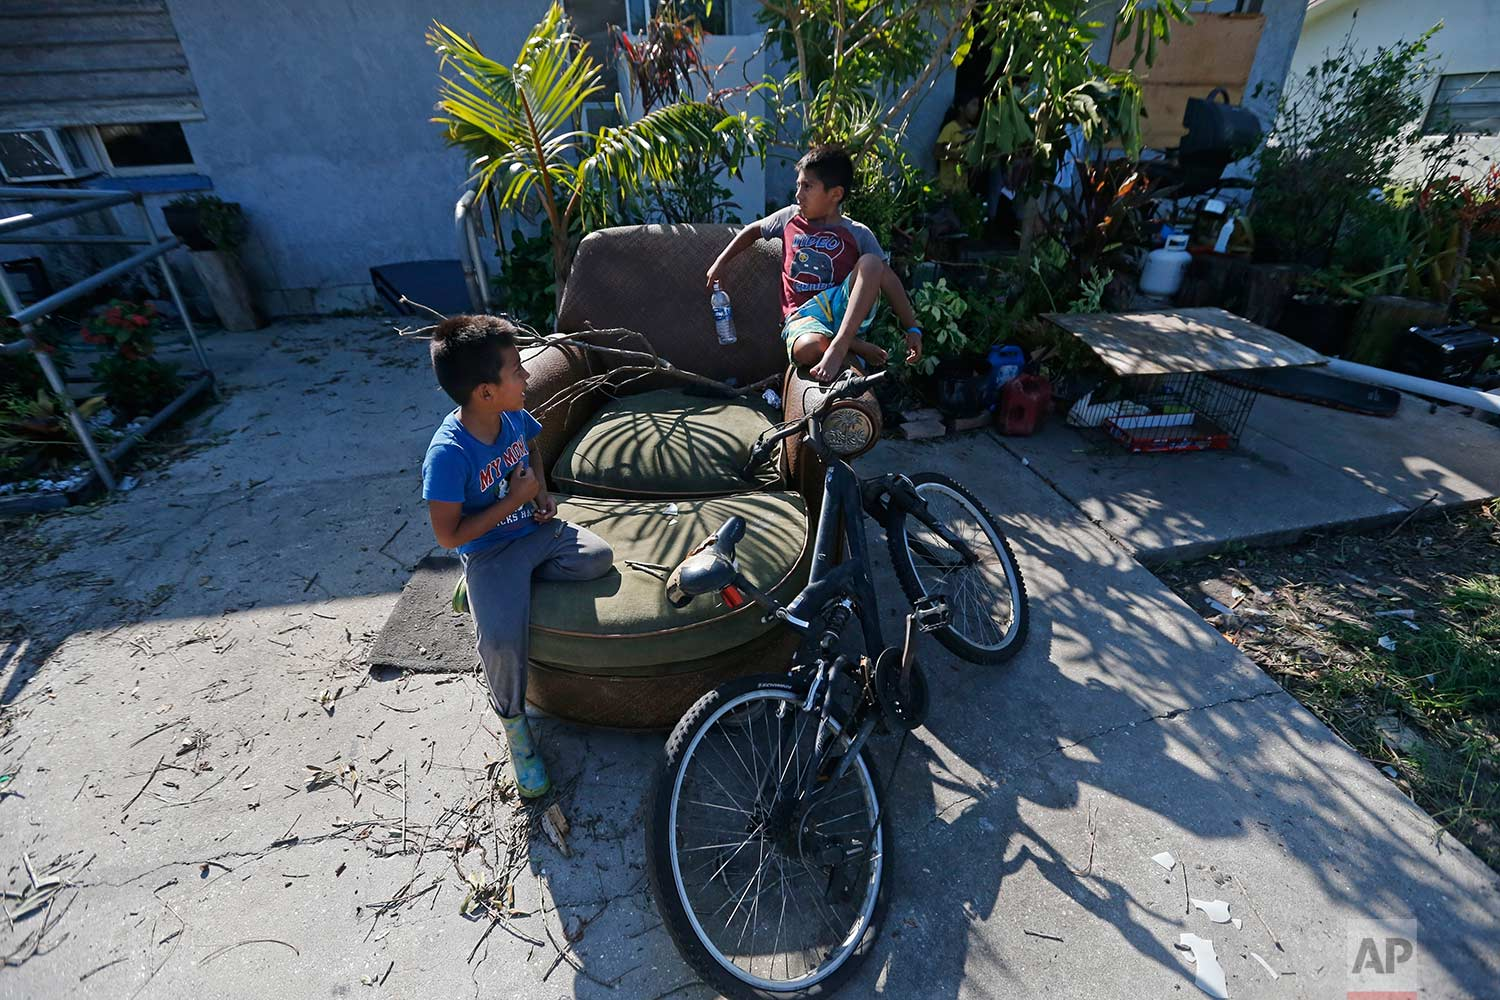 In this Sept. 12, 2017 photo, Giovani Gaspar, 6, right, and his brother, Isaac, 5, play on a chair outside their home, in the aftermath of Hurricane Irma, in Immokalee, Fla. Their father spent $600 getting ready for Irma, the equivalent of two weeks pay. (AP Photo/Gerald Herbert)